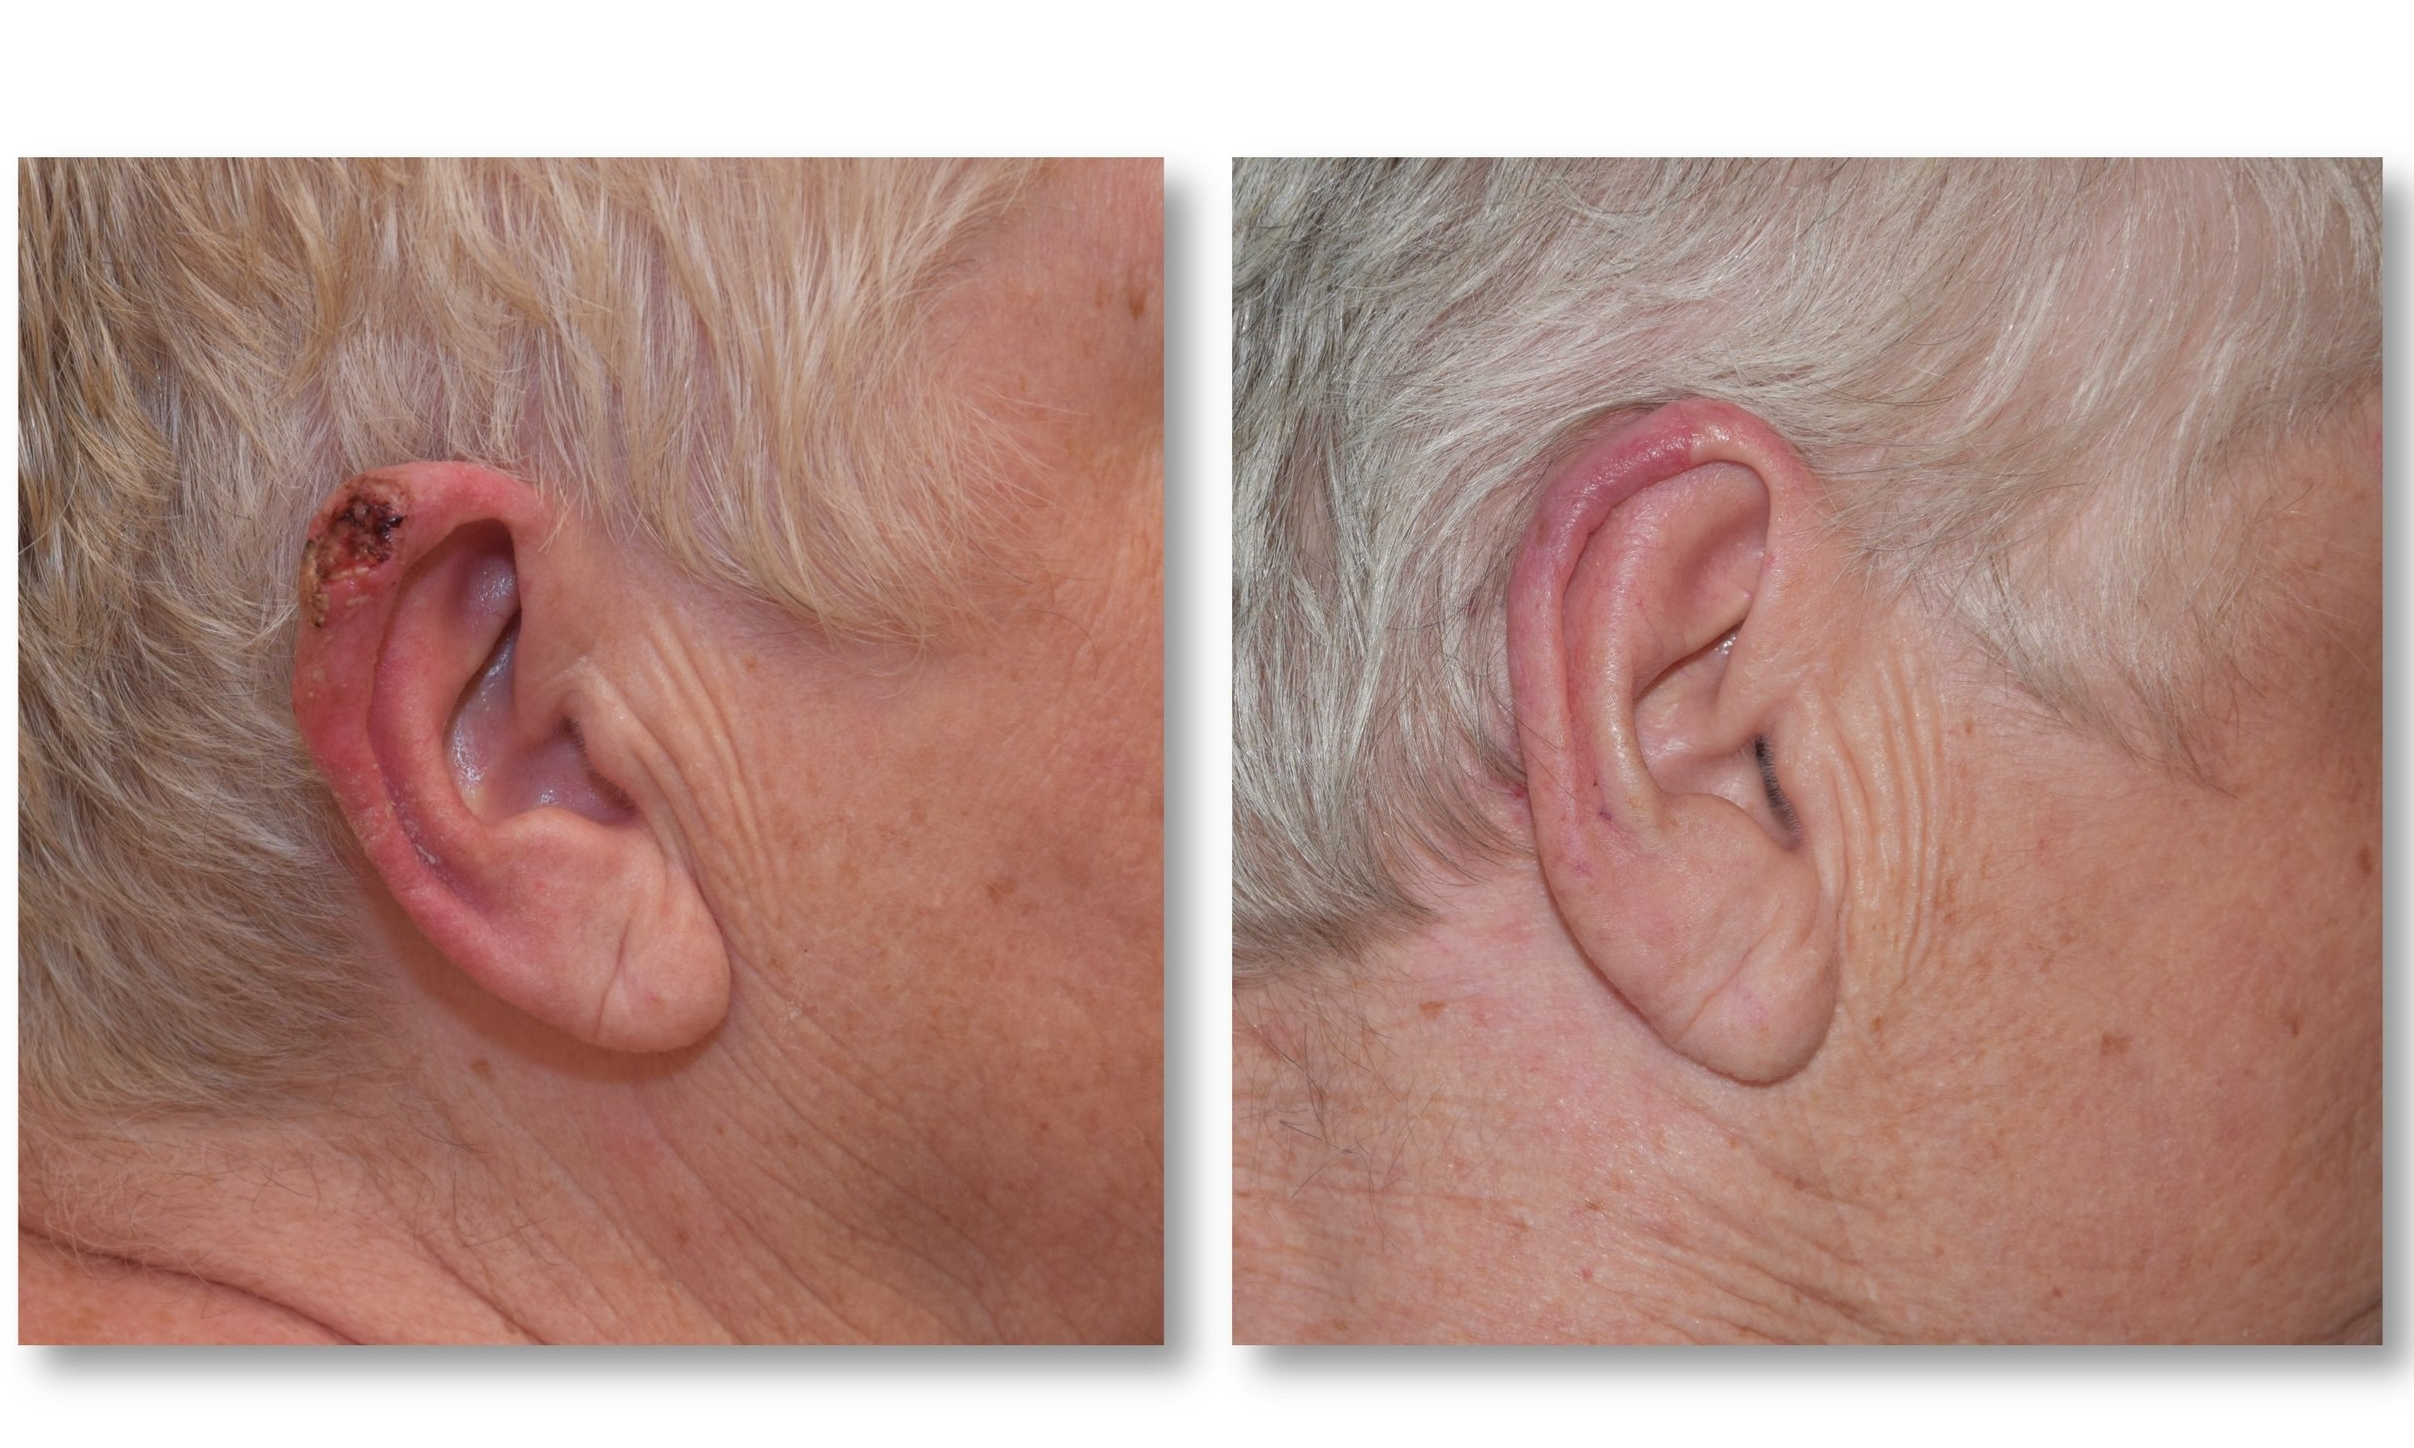 Ear Reconstruction with postauricular flap - This patient has squamous cell carcinoma skin cancer on the ear. The cancer was resected and the ear reconstructed with a postauricular flap. On the right, the ear is seen several weeks later with a normal appearance and cancer cured.